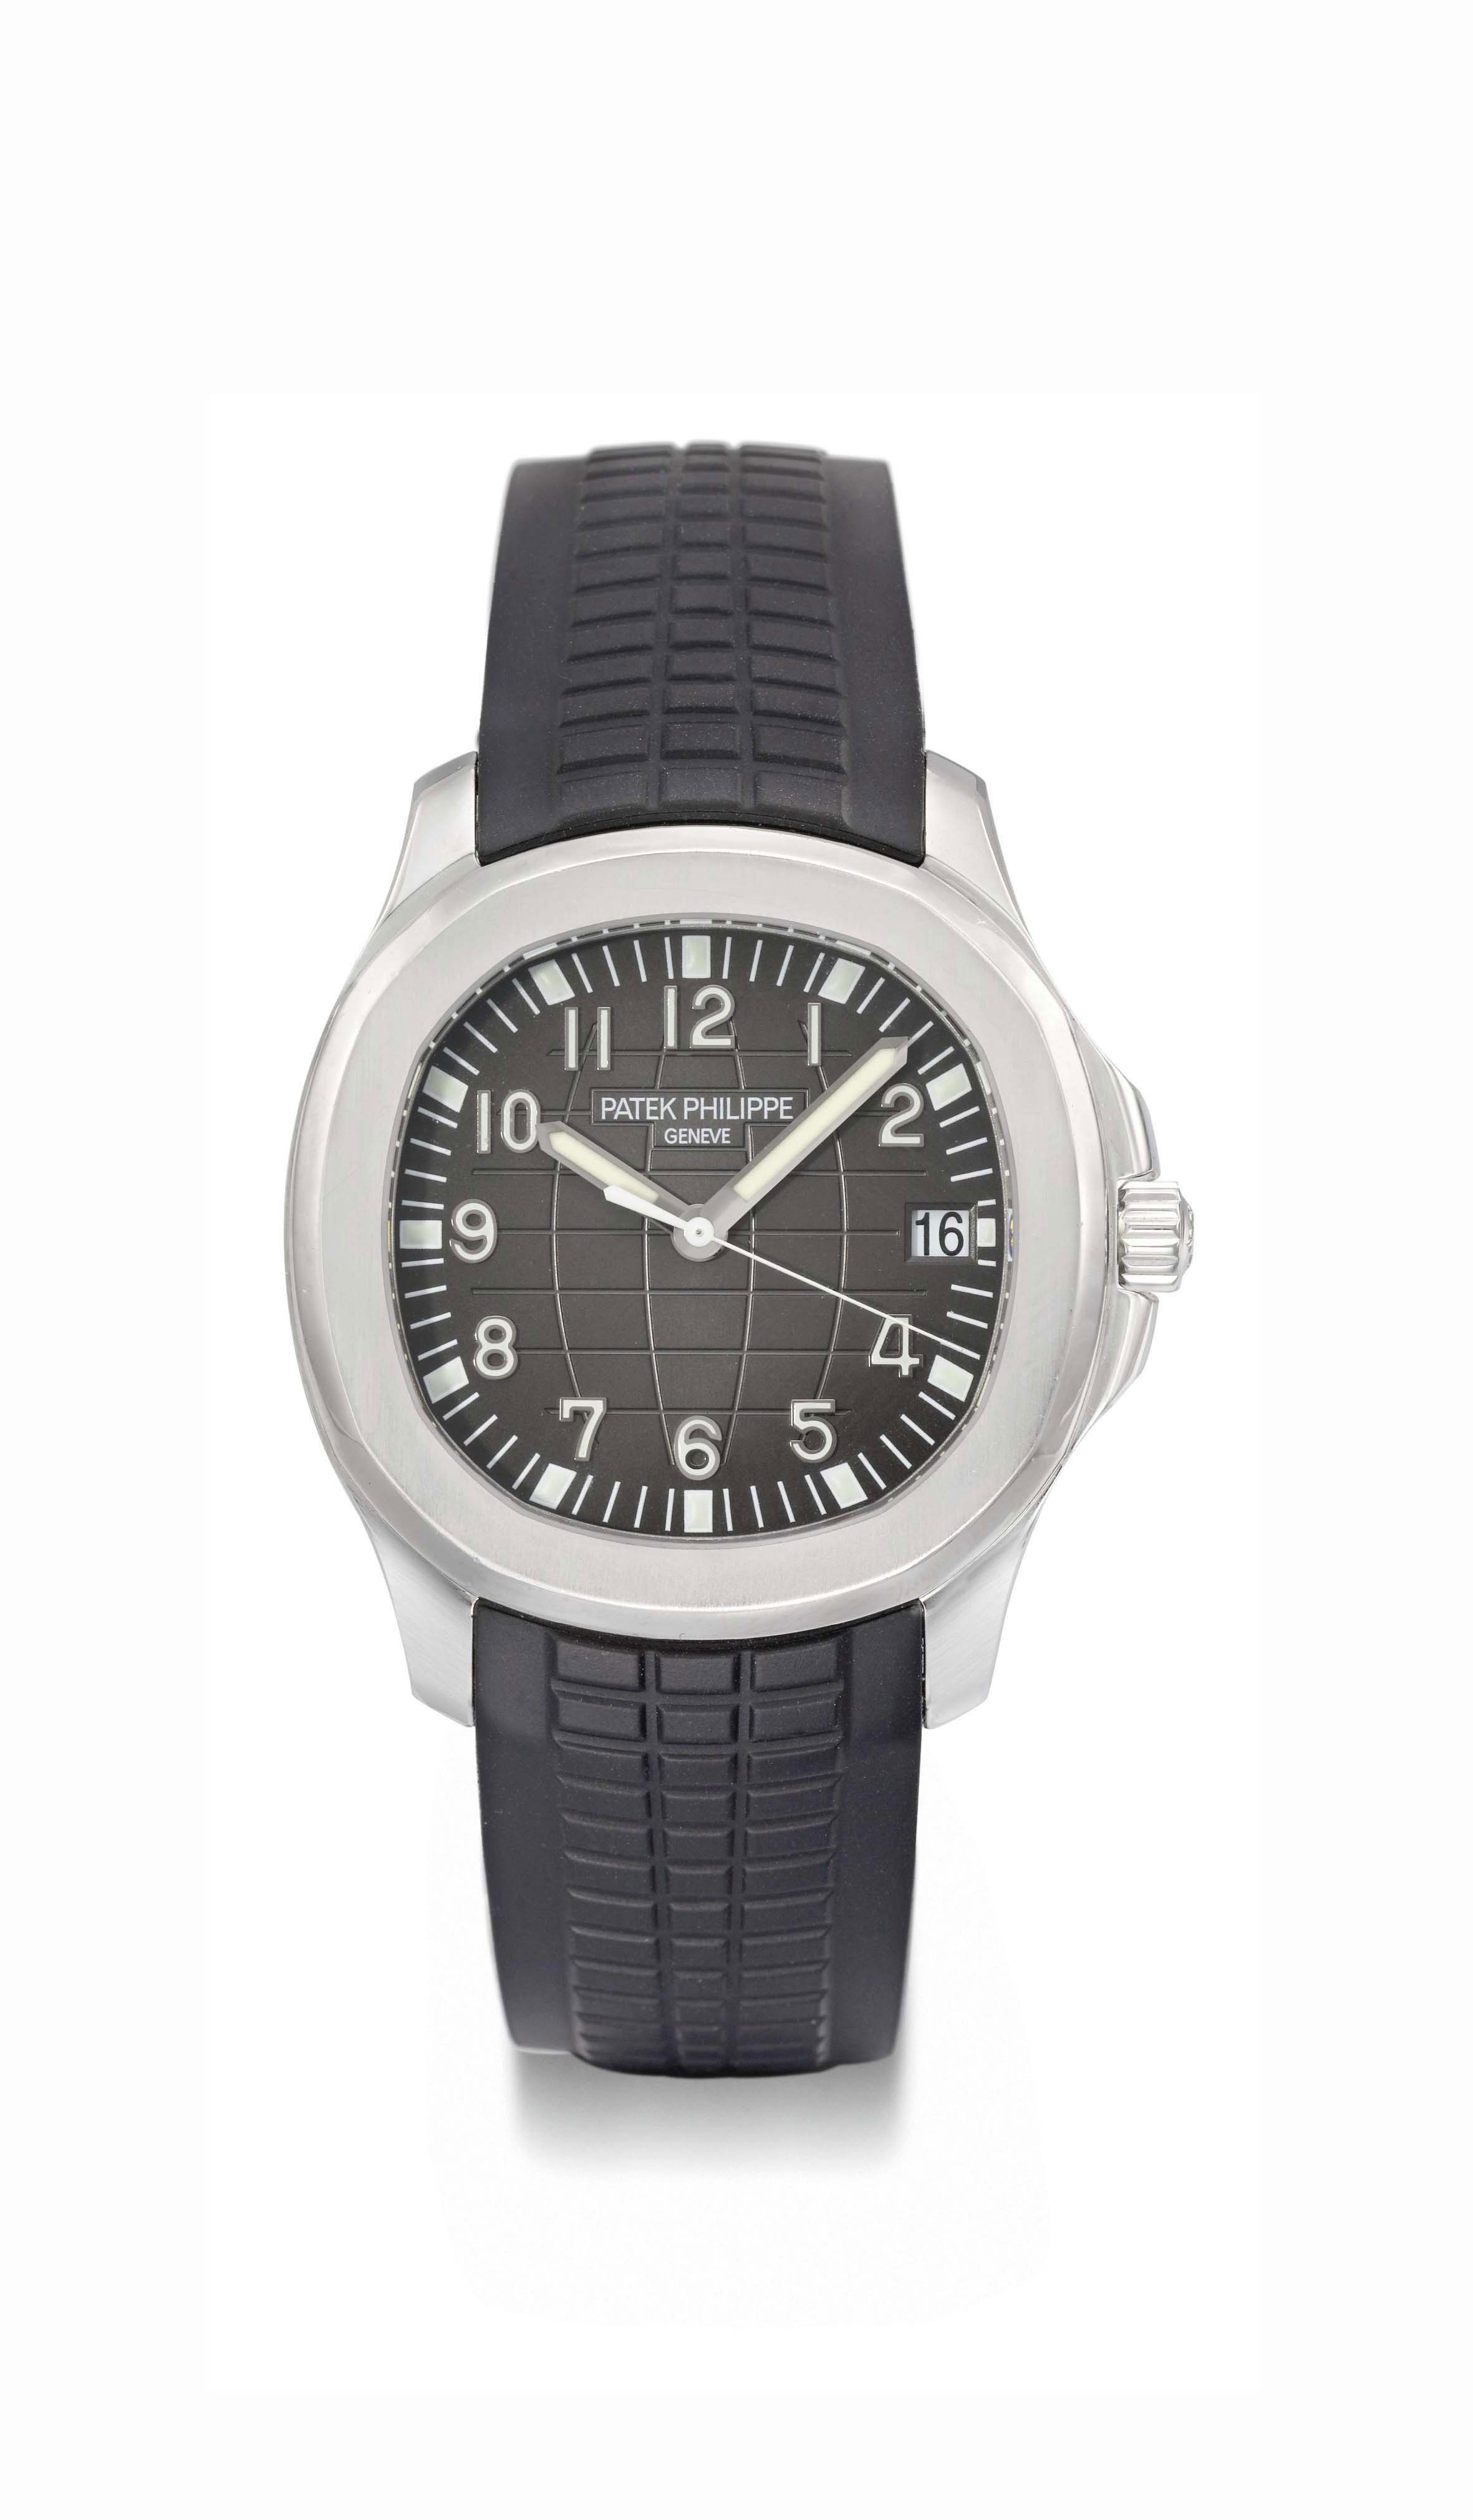 Patek philippe a large stainless steel automatic wristwatch with sweep centre seconds and date for Patek philippe geneve